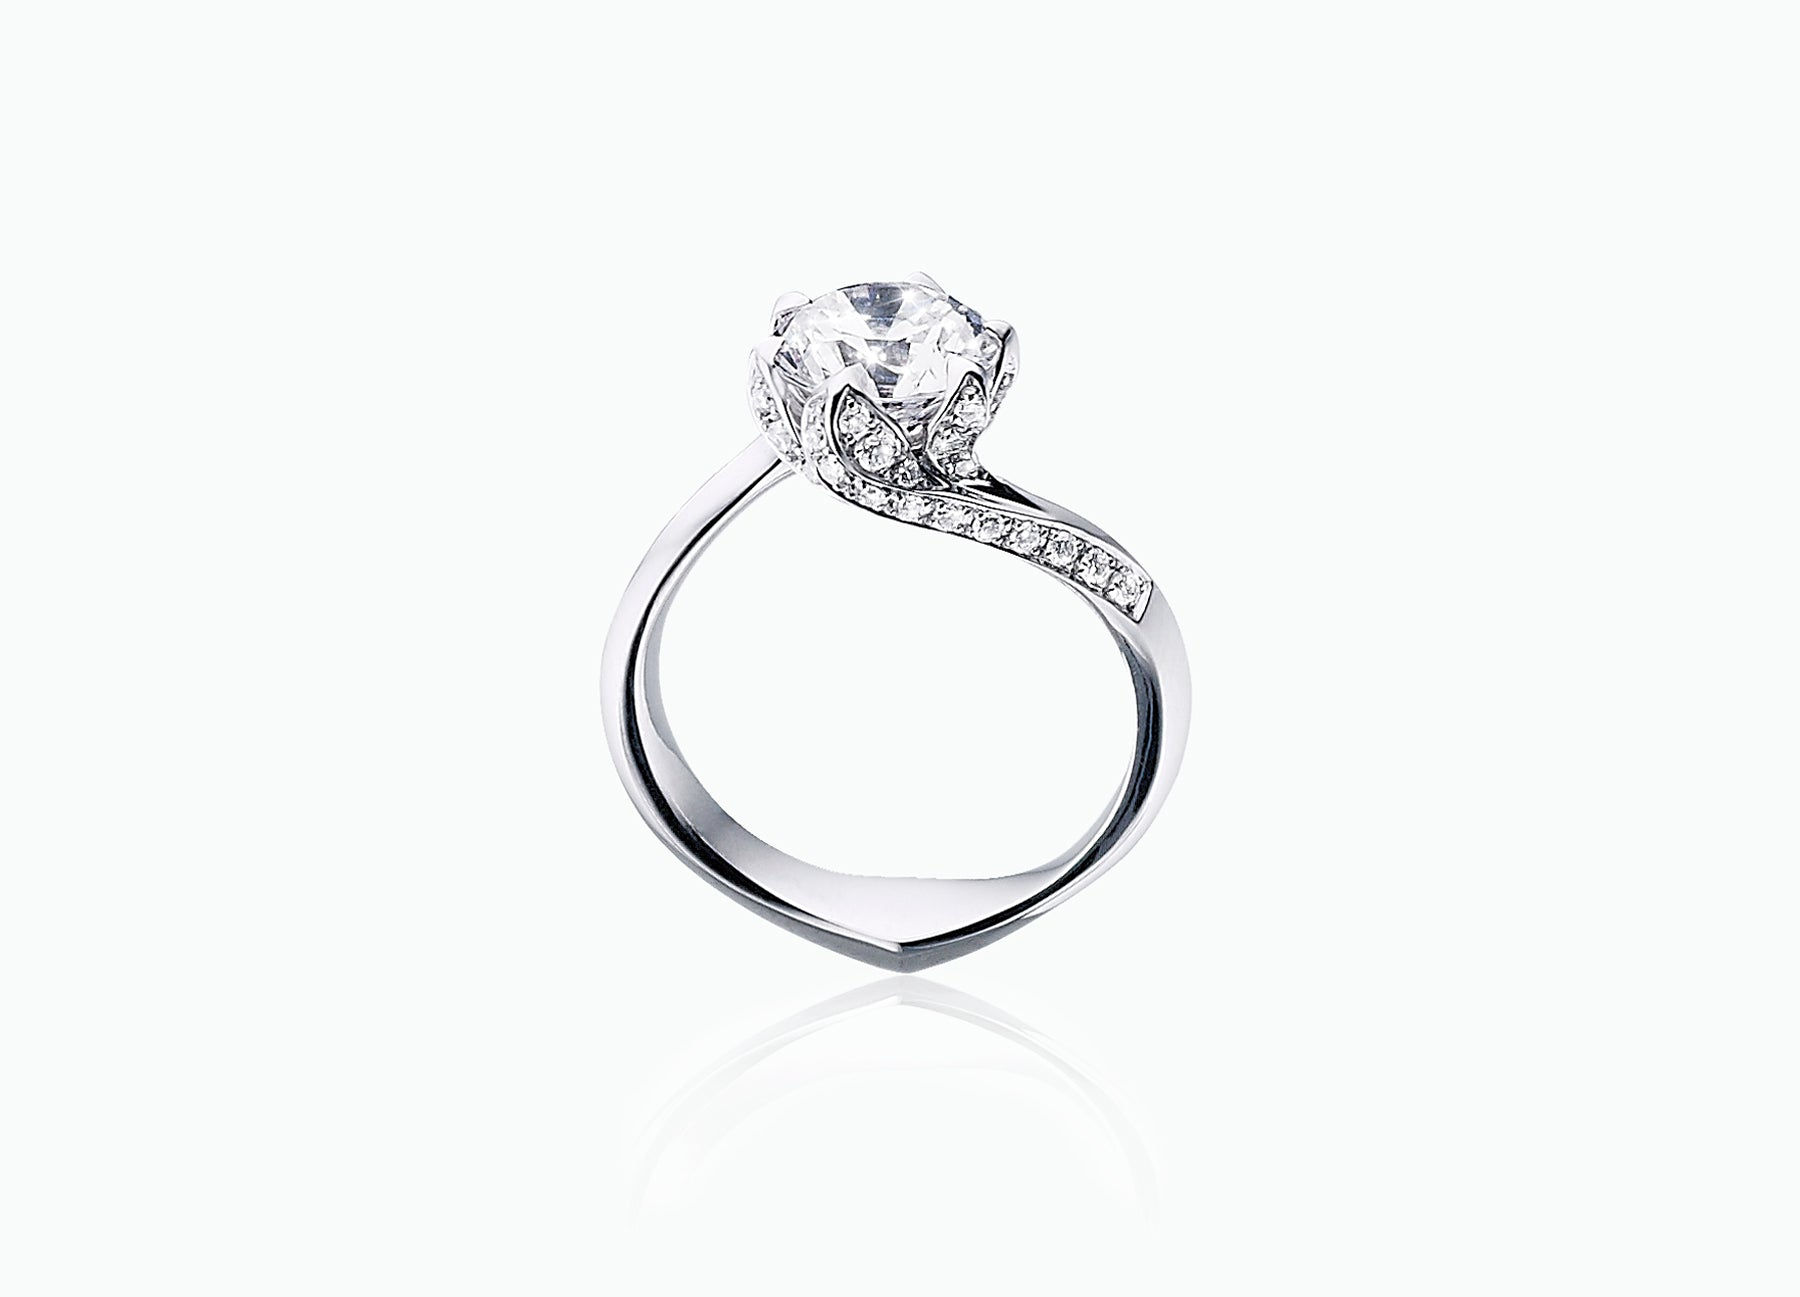 image furrer jacot lily platinum ring rings engagement